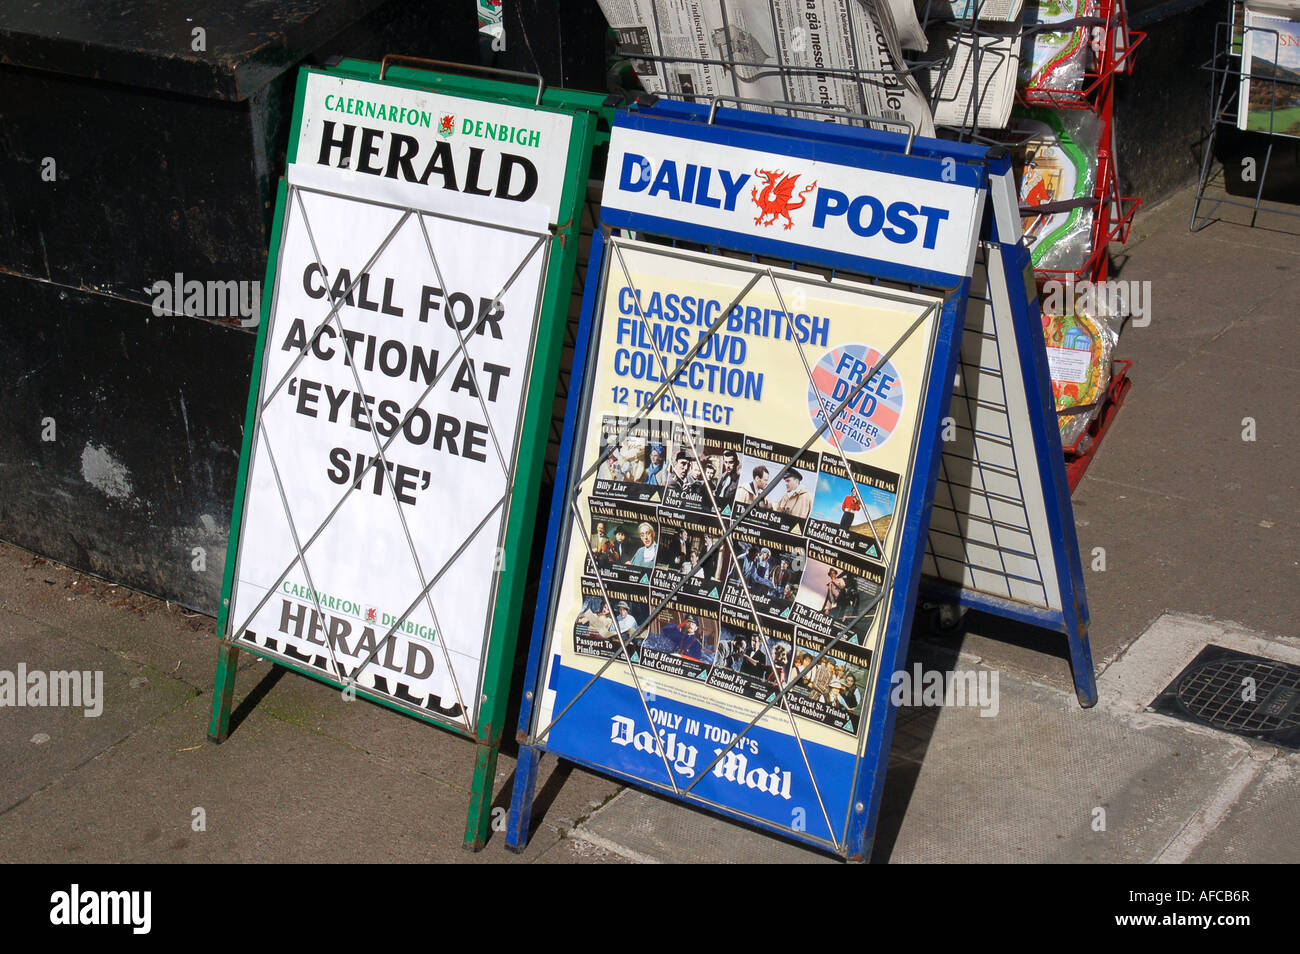 Newspaper advert boards outside shop - Stock Image